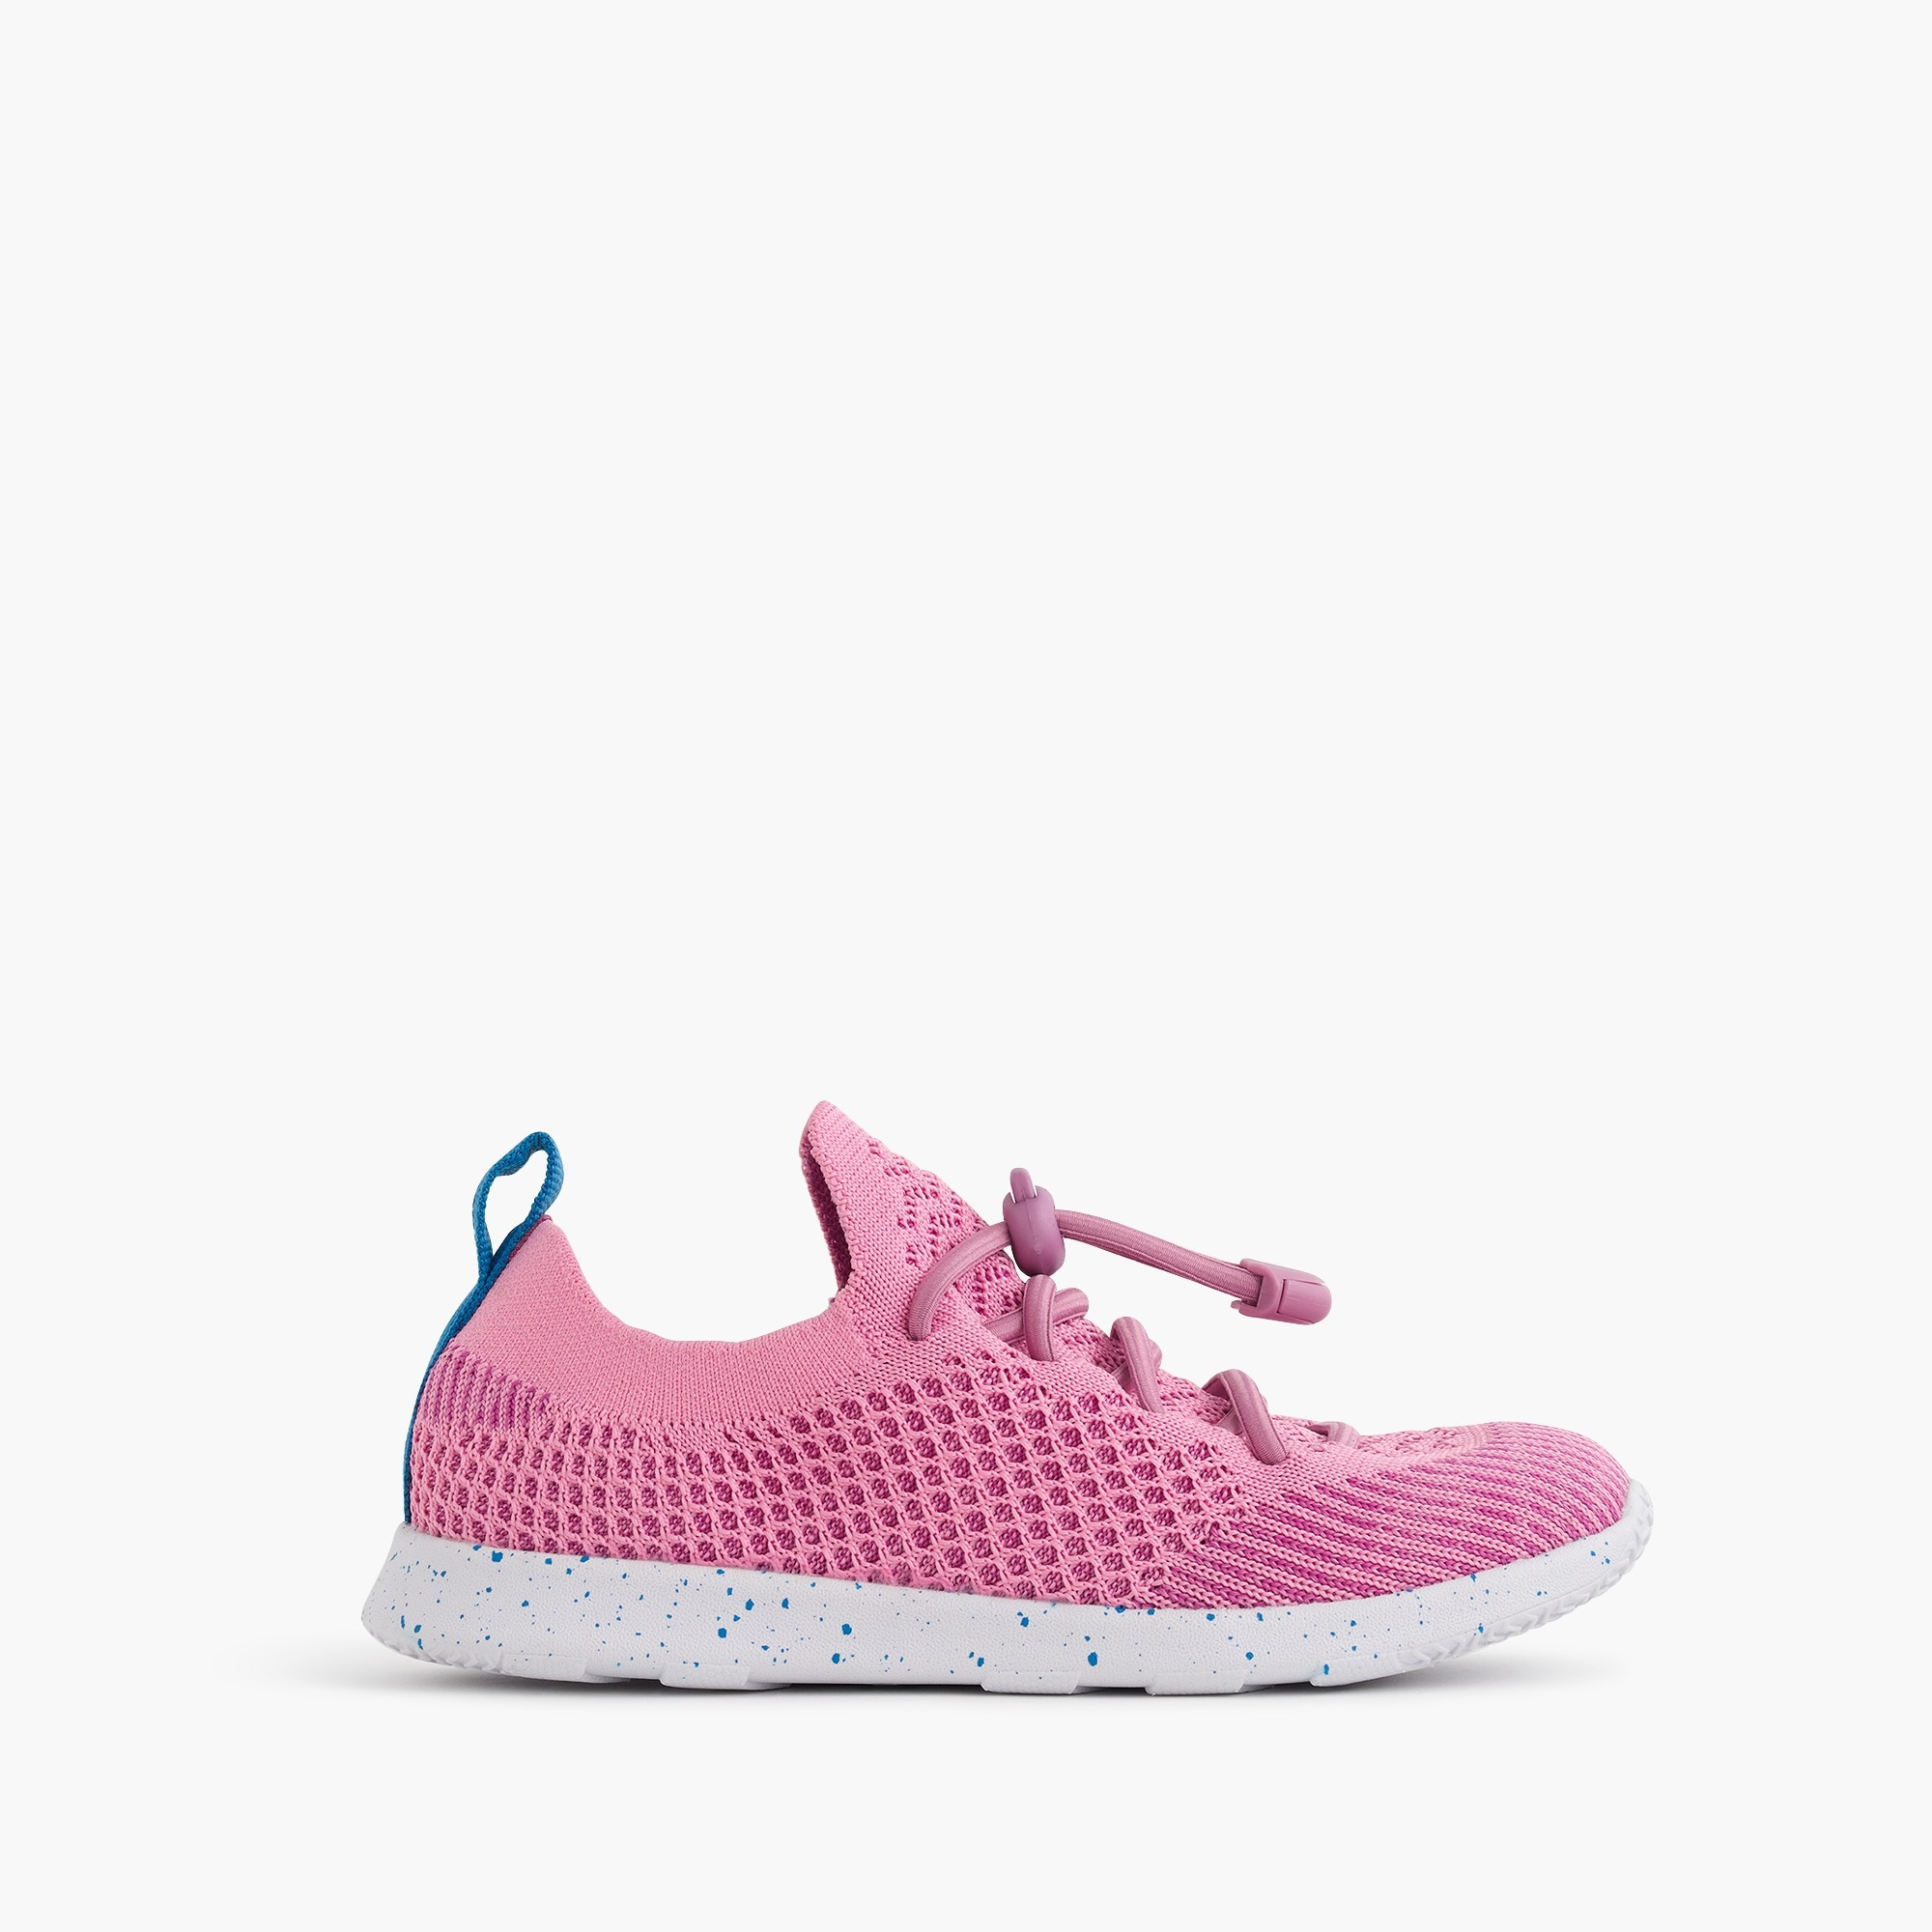 Girls' Native™ for crewcuts AP mercury liteknit sneakers in smaller sizes